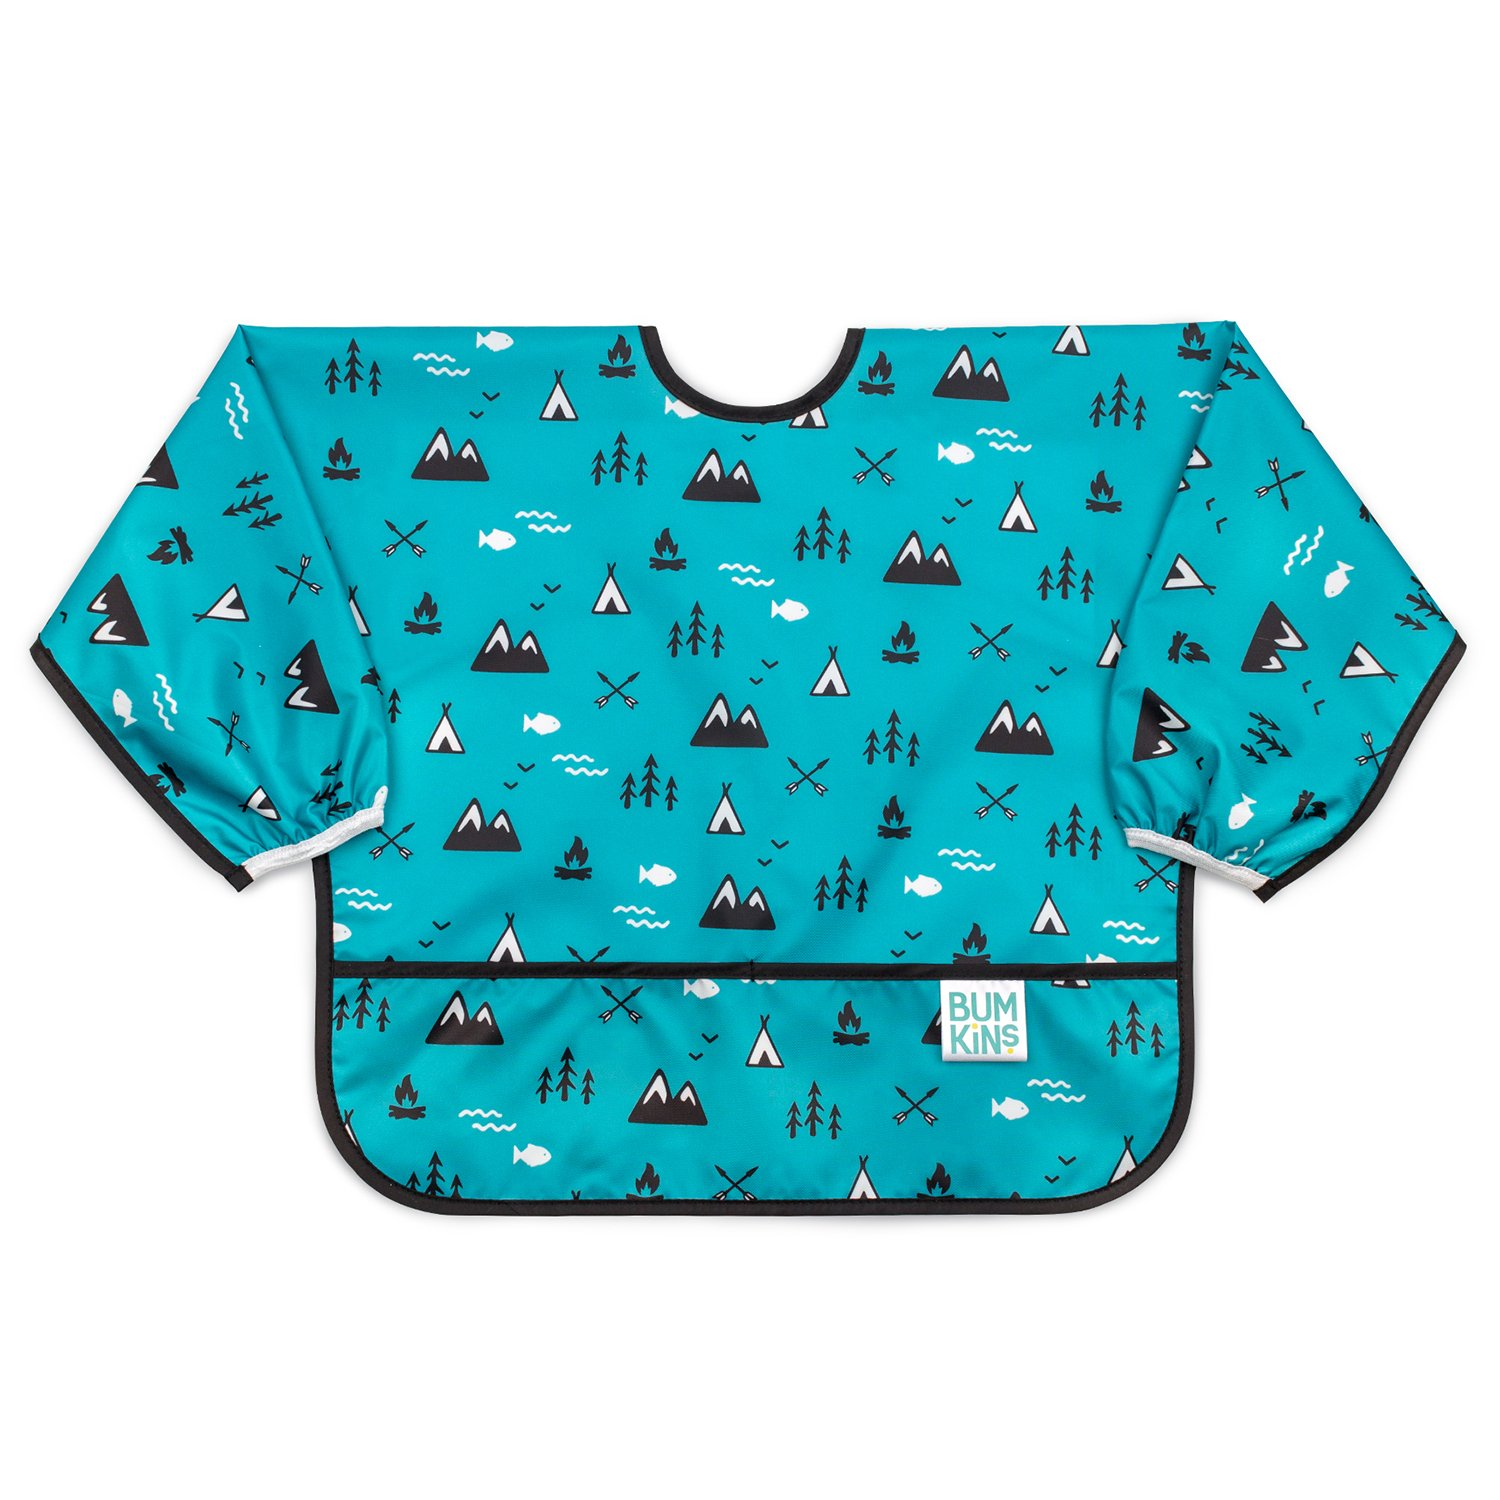 Bumkins Waterproof Sleeved Bib, Outdoors, 6-24 Months SU-24